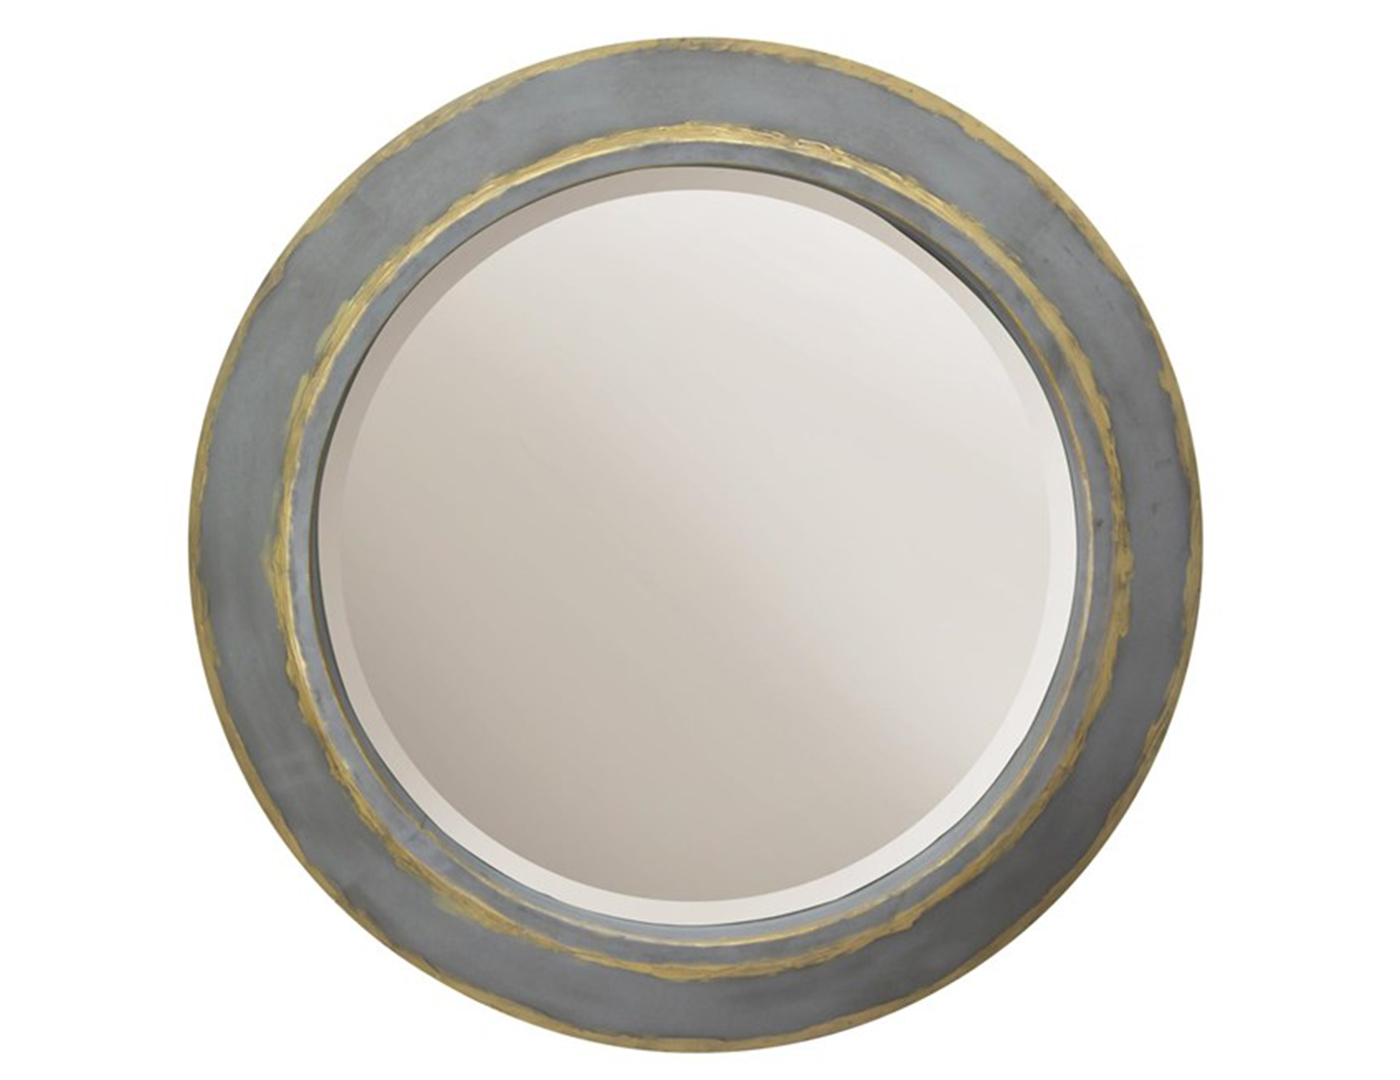 "Tin and Gold Finish Round Mirror 36"" Round"